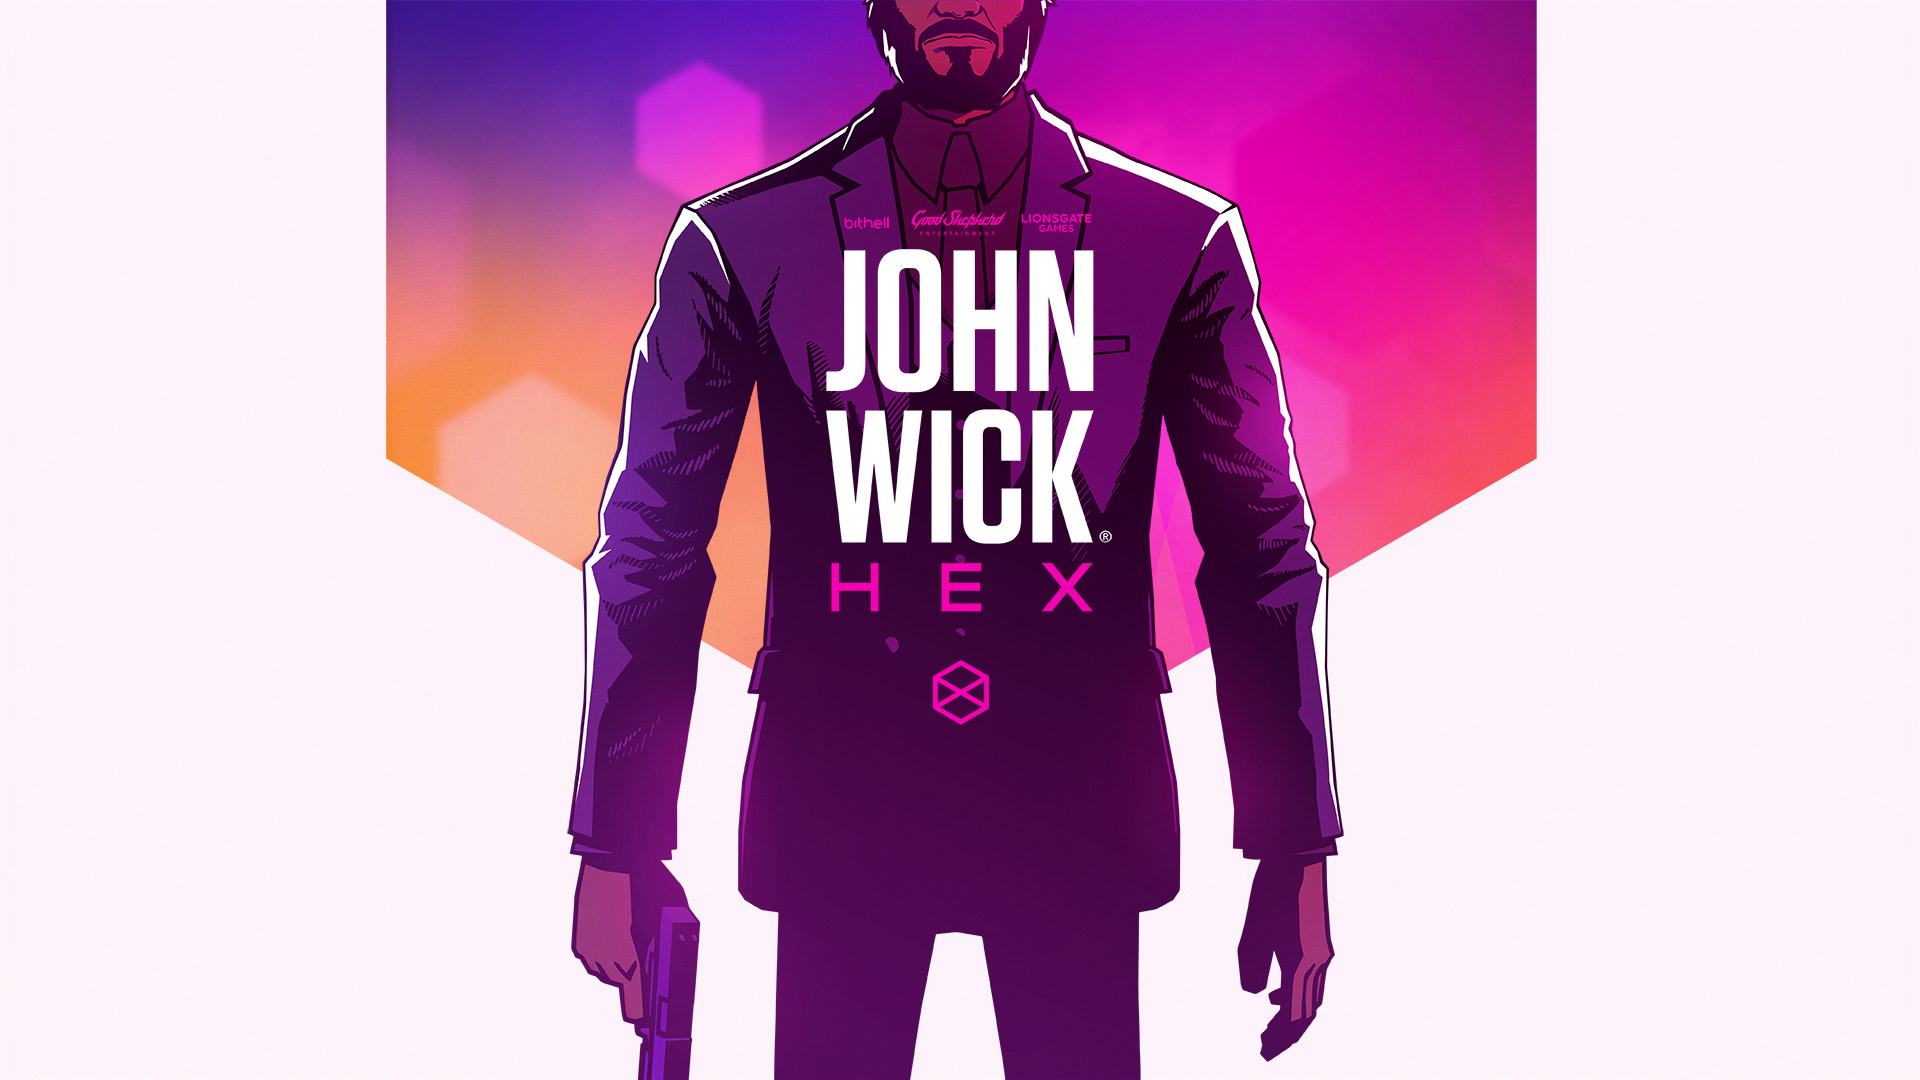 Free John Wick Hex Wallpaper in 1920x1080